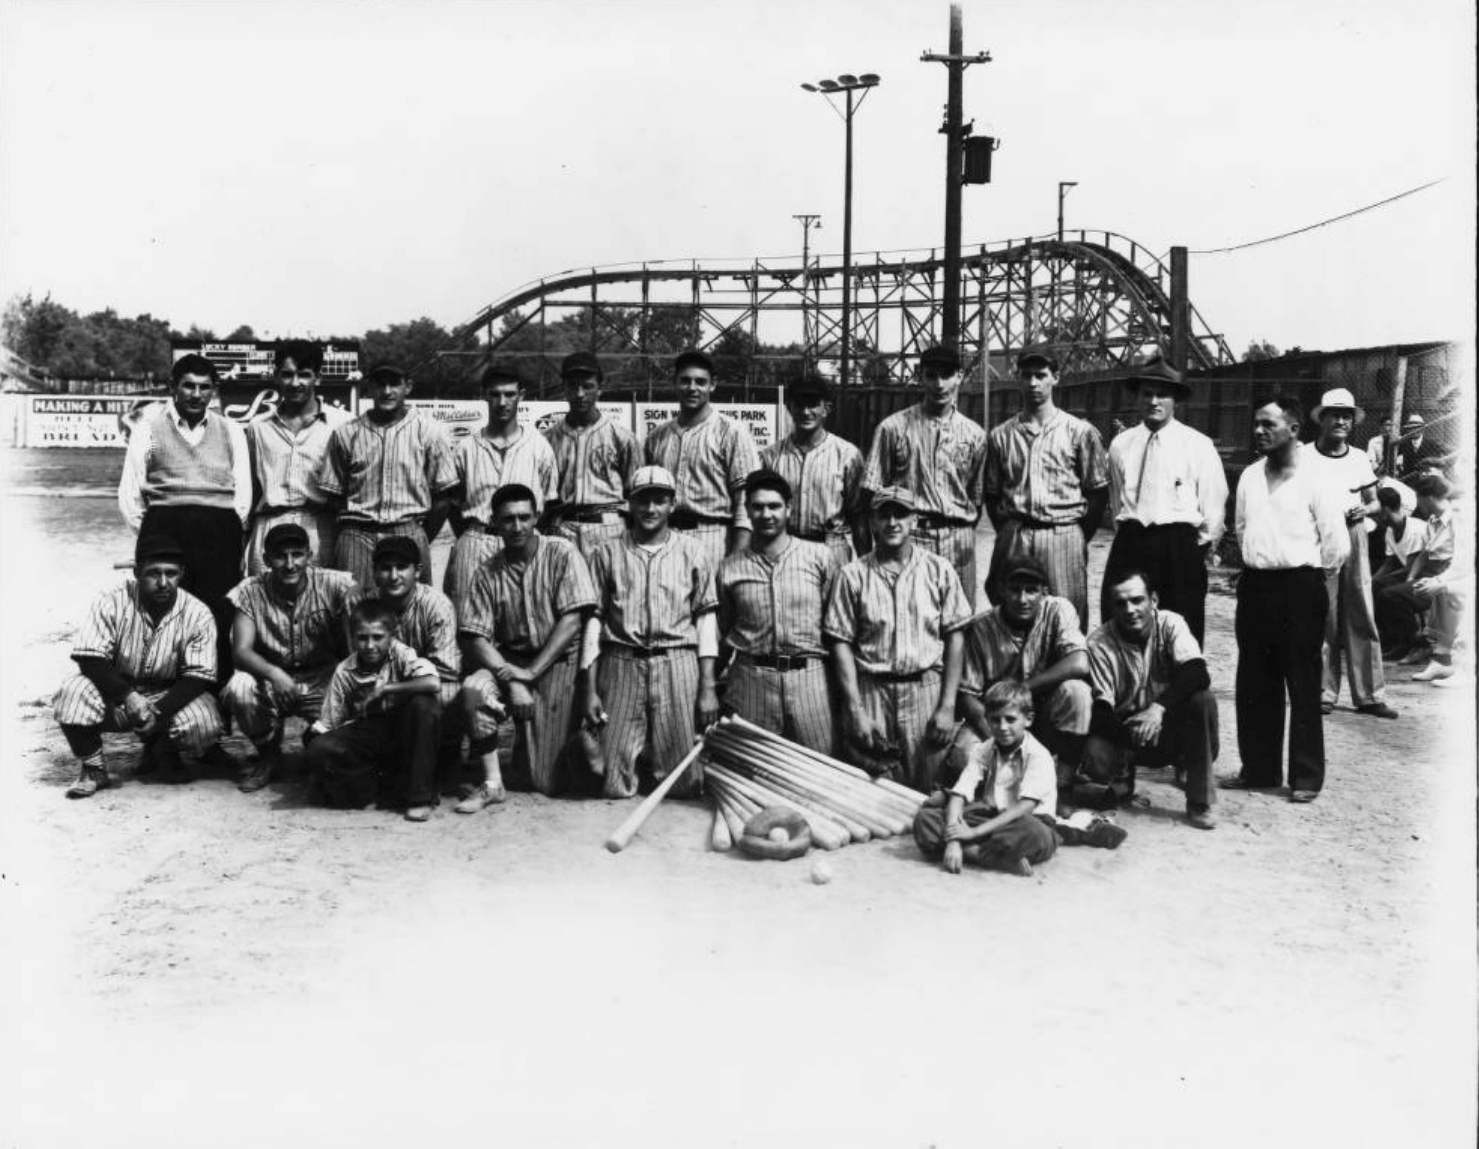 Youngstown Sheet and Tube Company employees before a baseball game at Idora Park on Labor Day in 1939. The Jack Rabbit roller coaster is visible in the background.